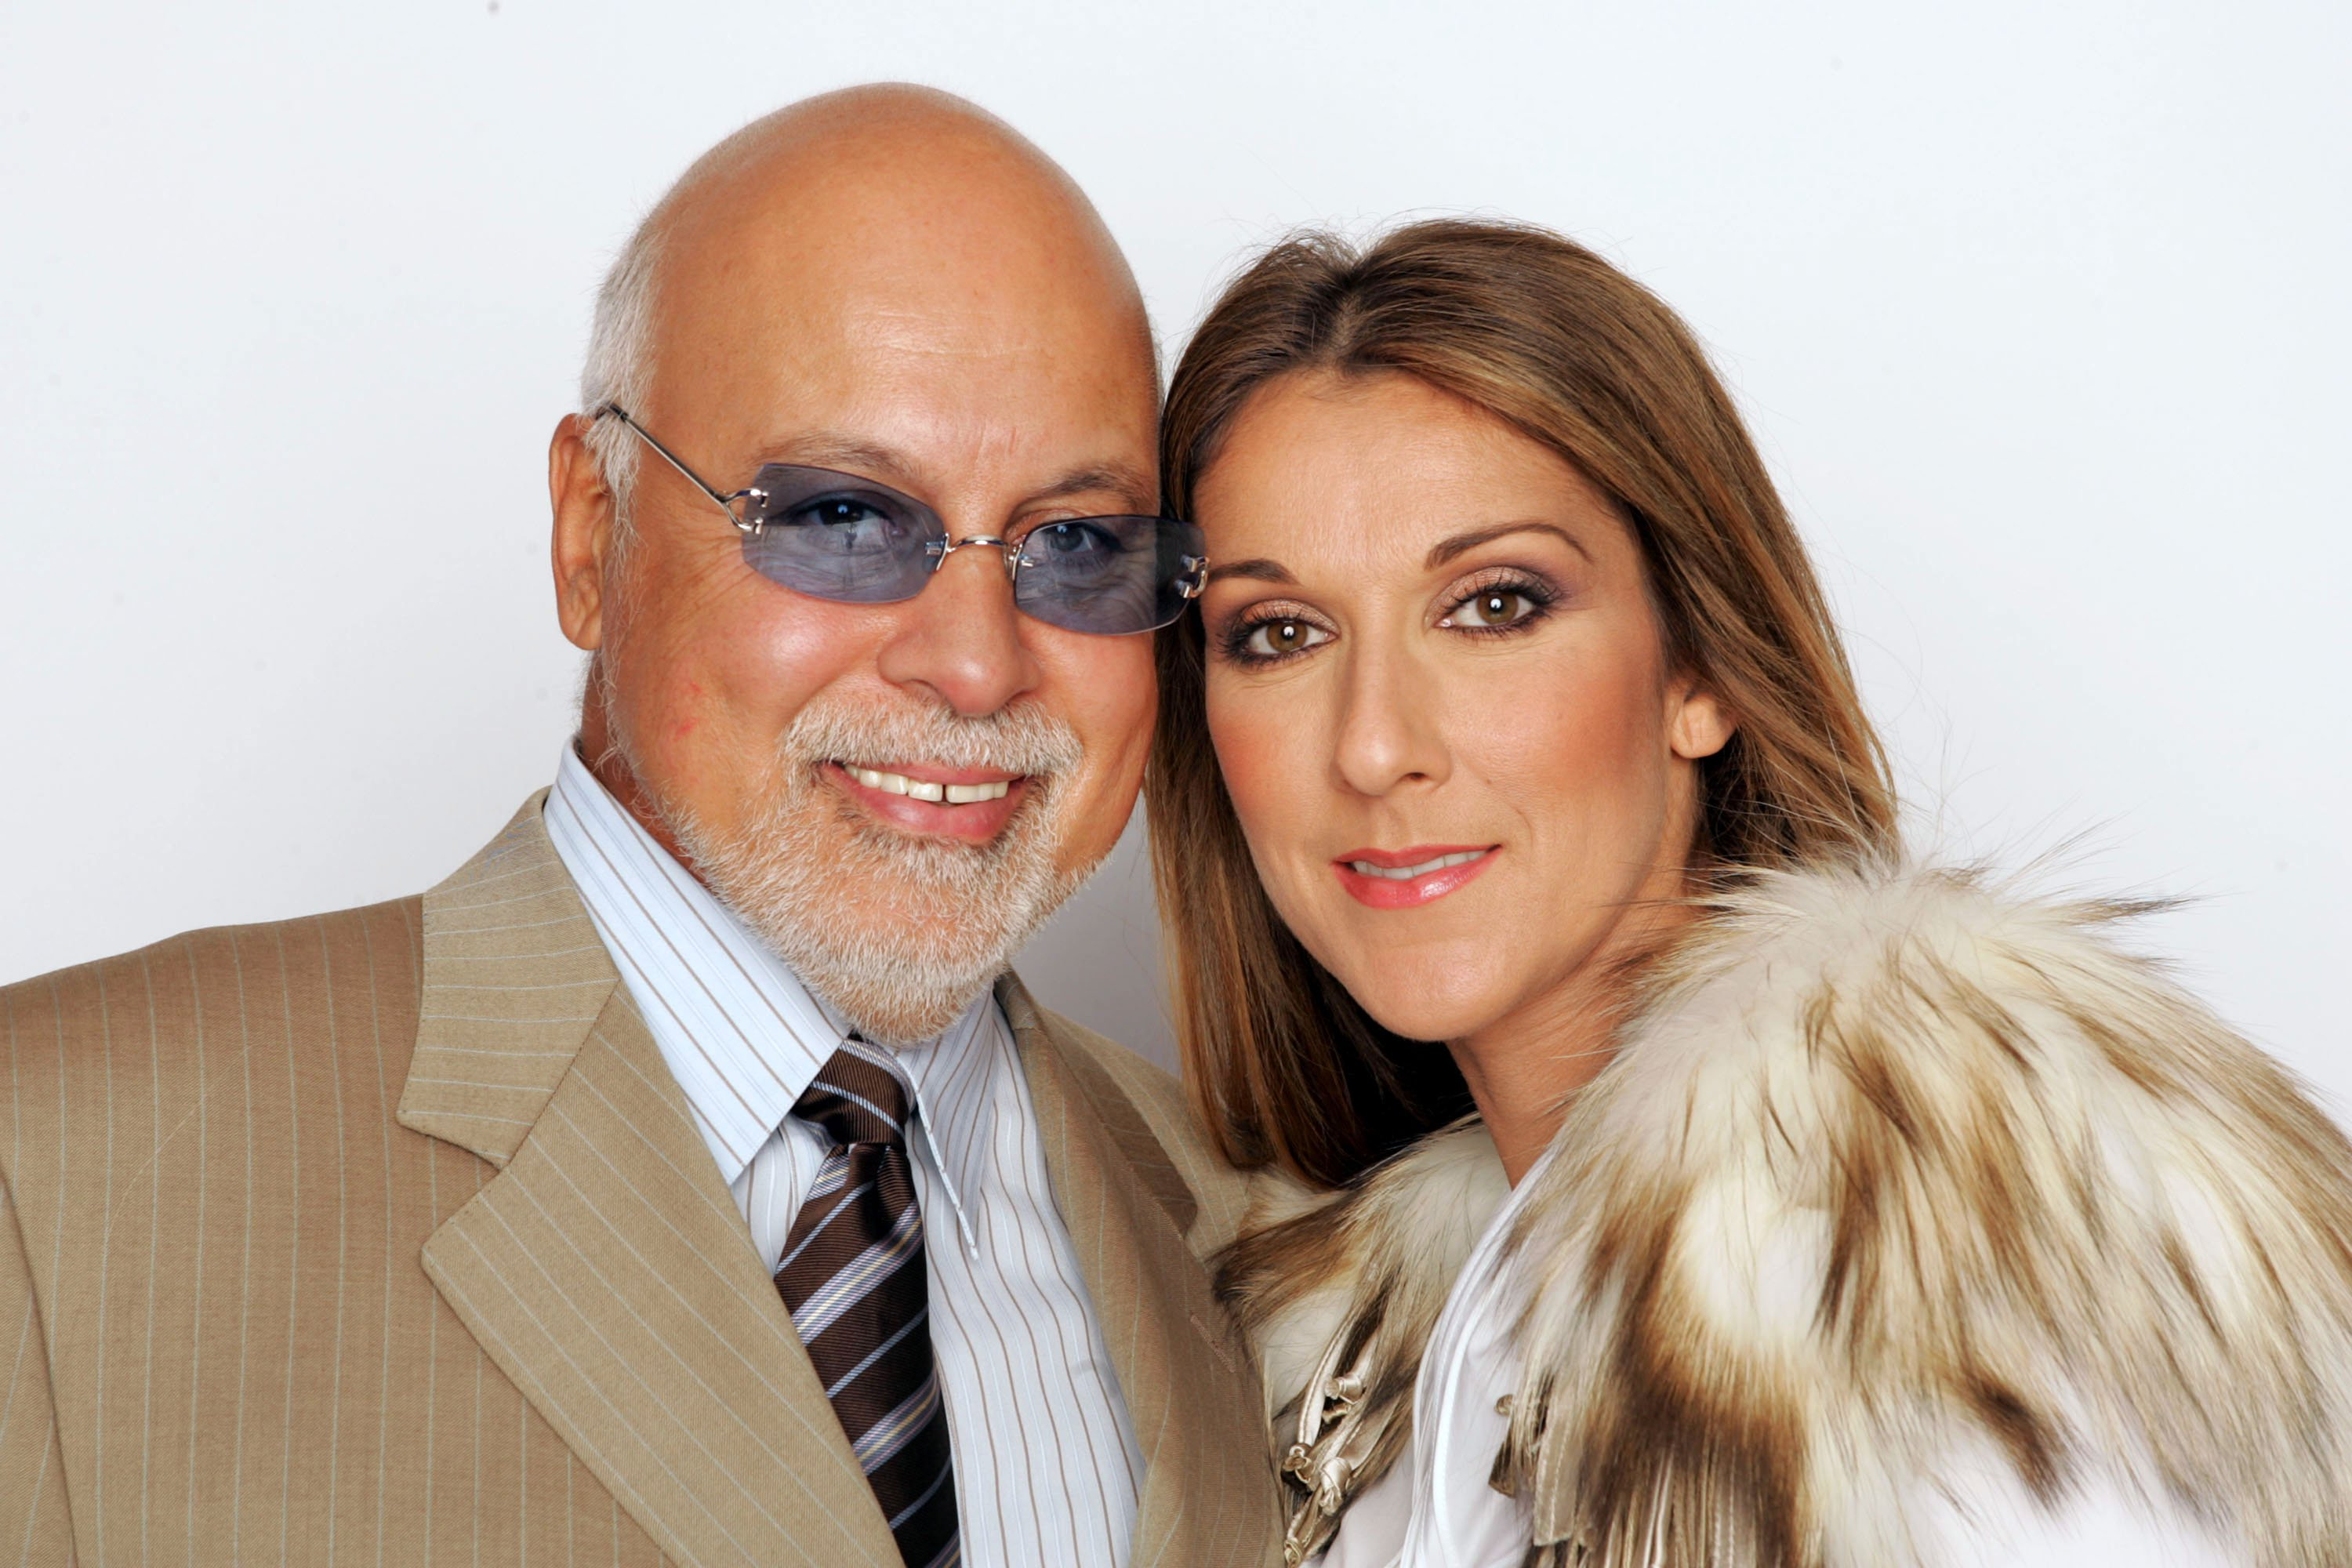 Celine Dion and her husband Rene Angelil pose for a picture backstage during the 2004 World Music Awards at the Thomas and Mack Center on September 15, 2004, in Las Vegas, Nevada. | Source: Getty Images.